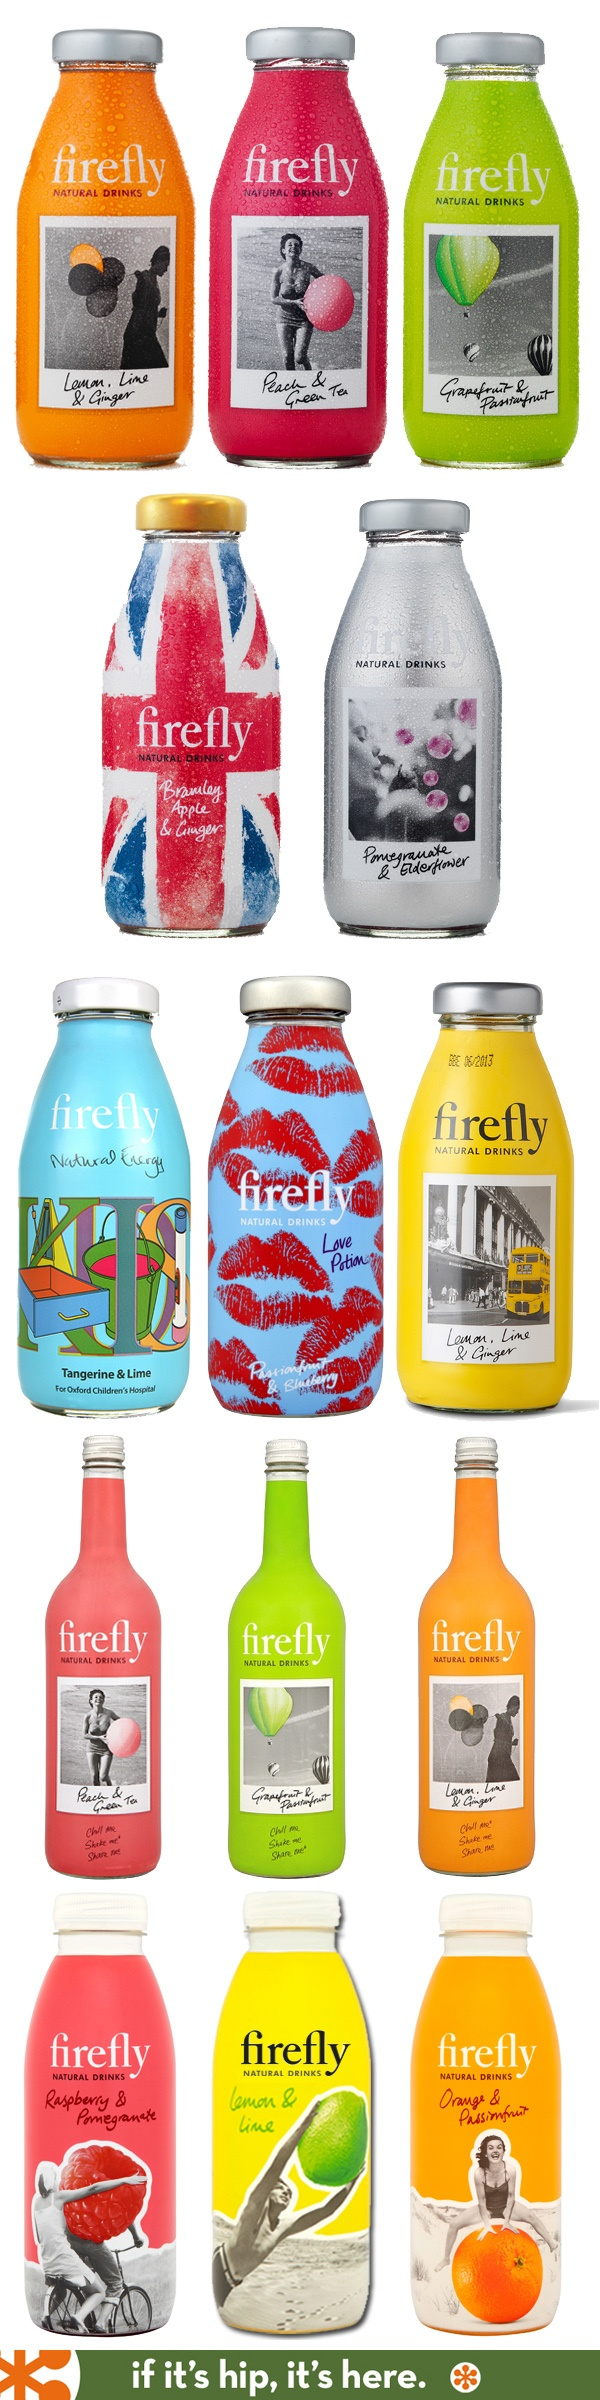 Firefly Tonics bottles, Including the Limited Editions. Love them all.